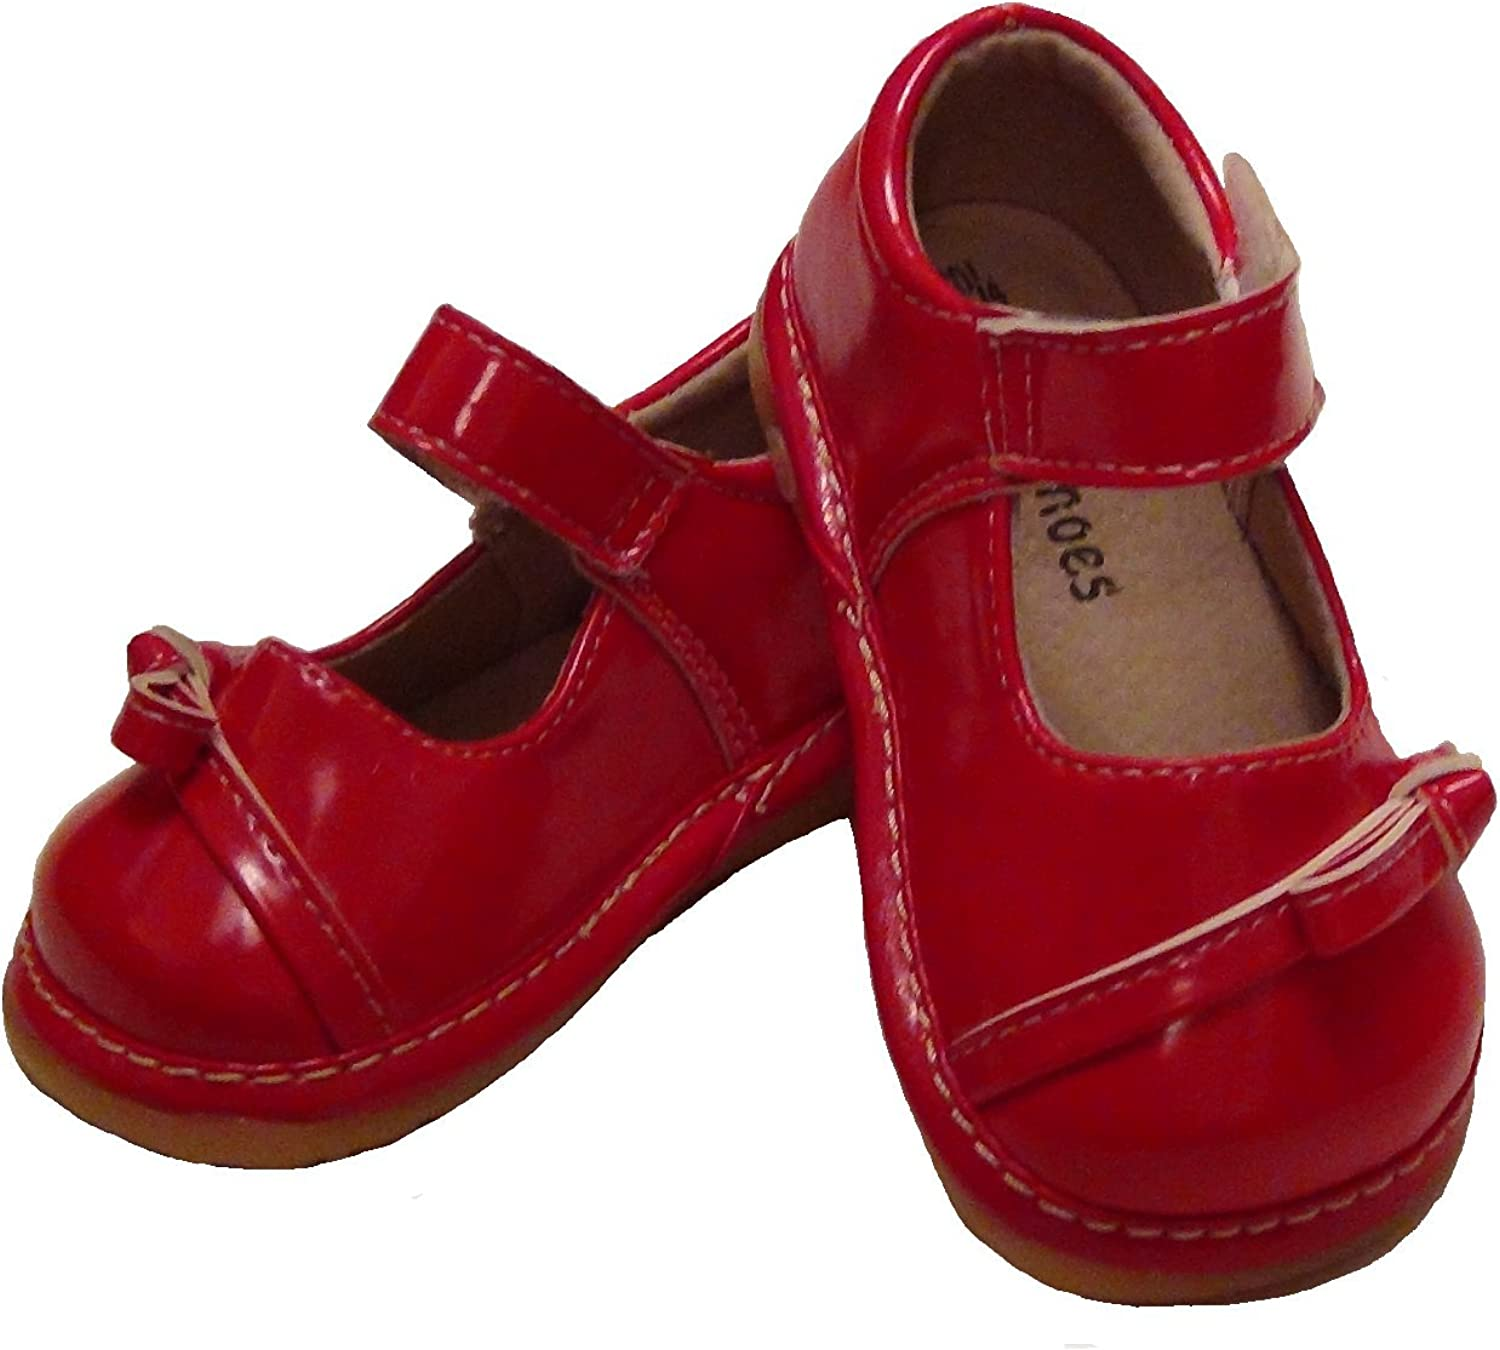 Girls Red Shoes, Young Girls Toddler